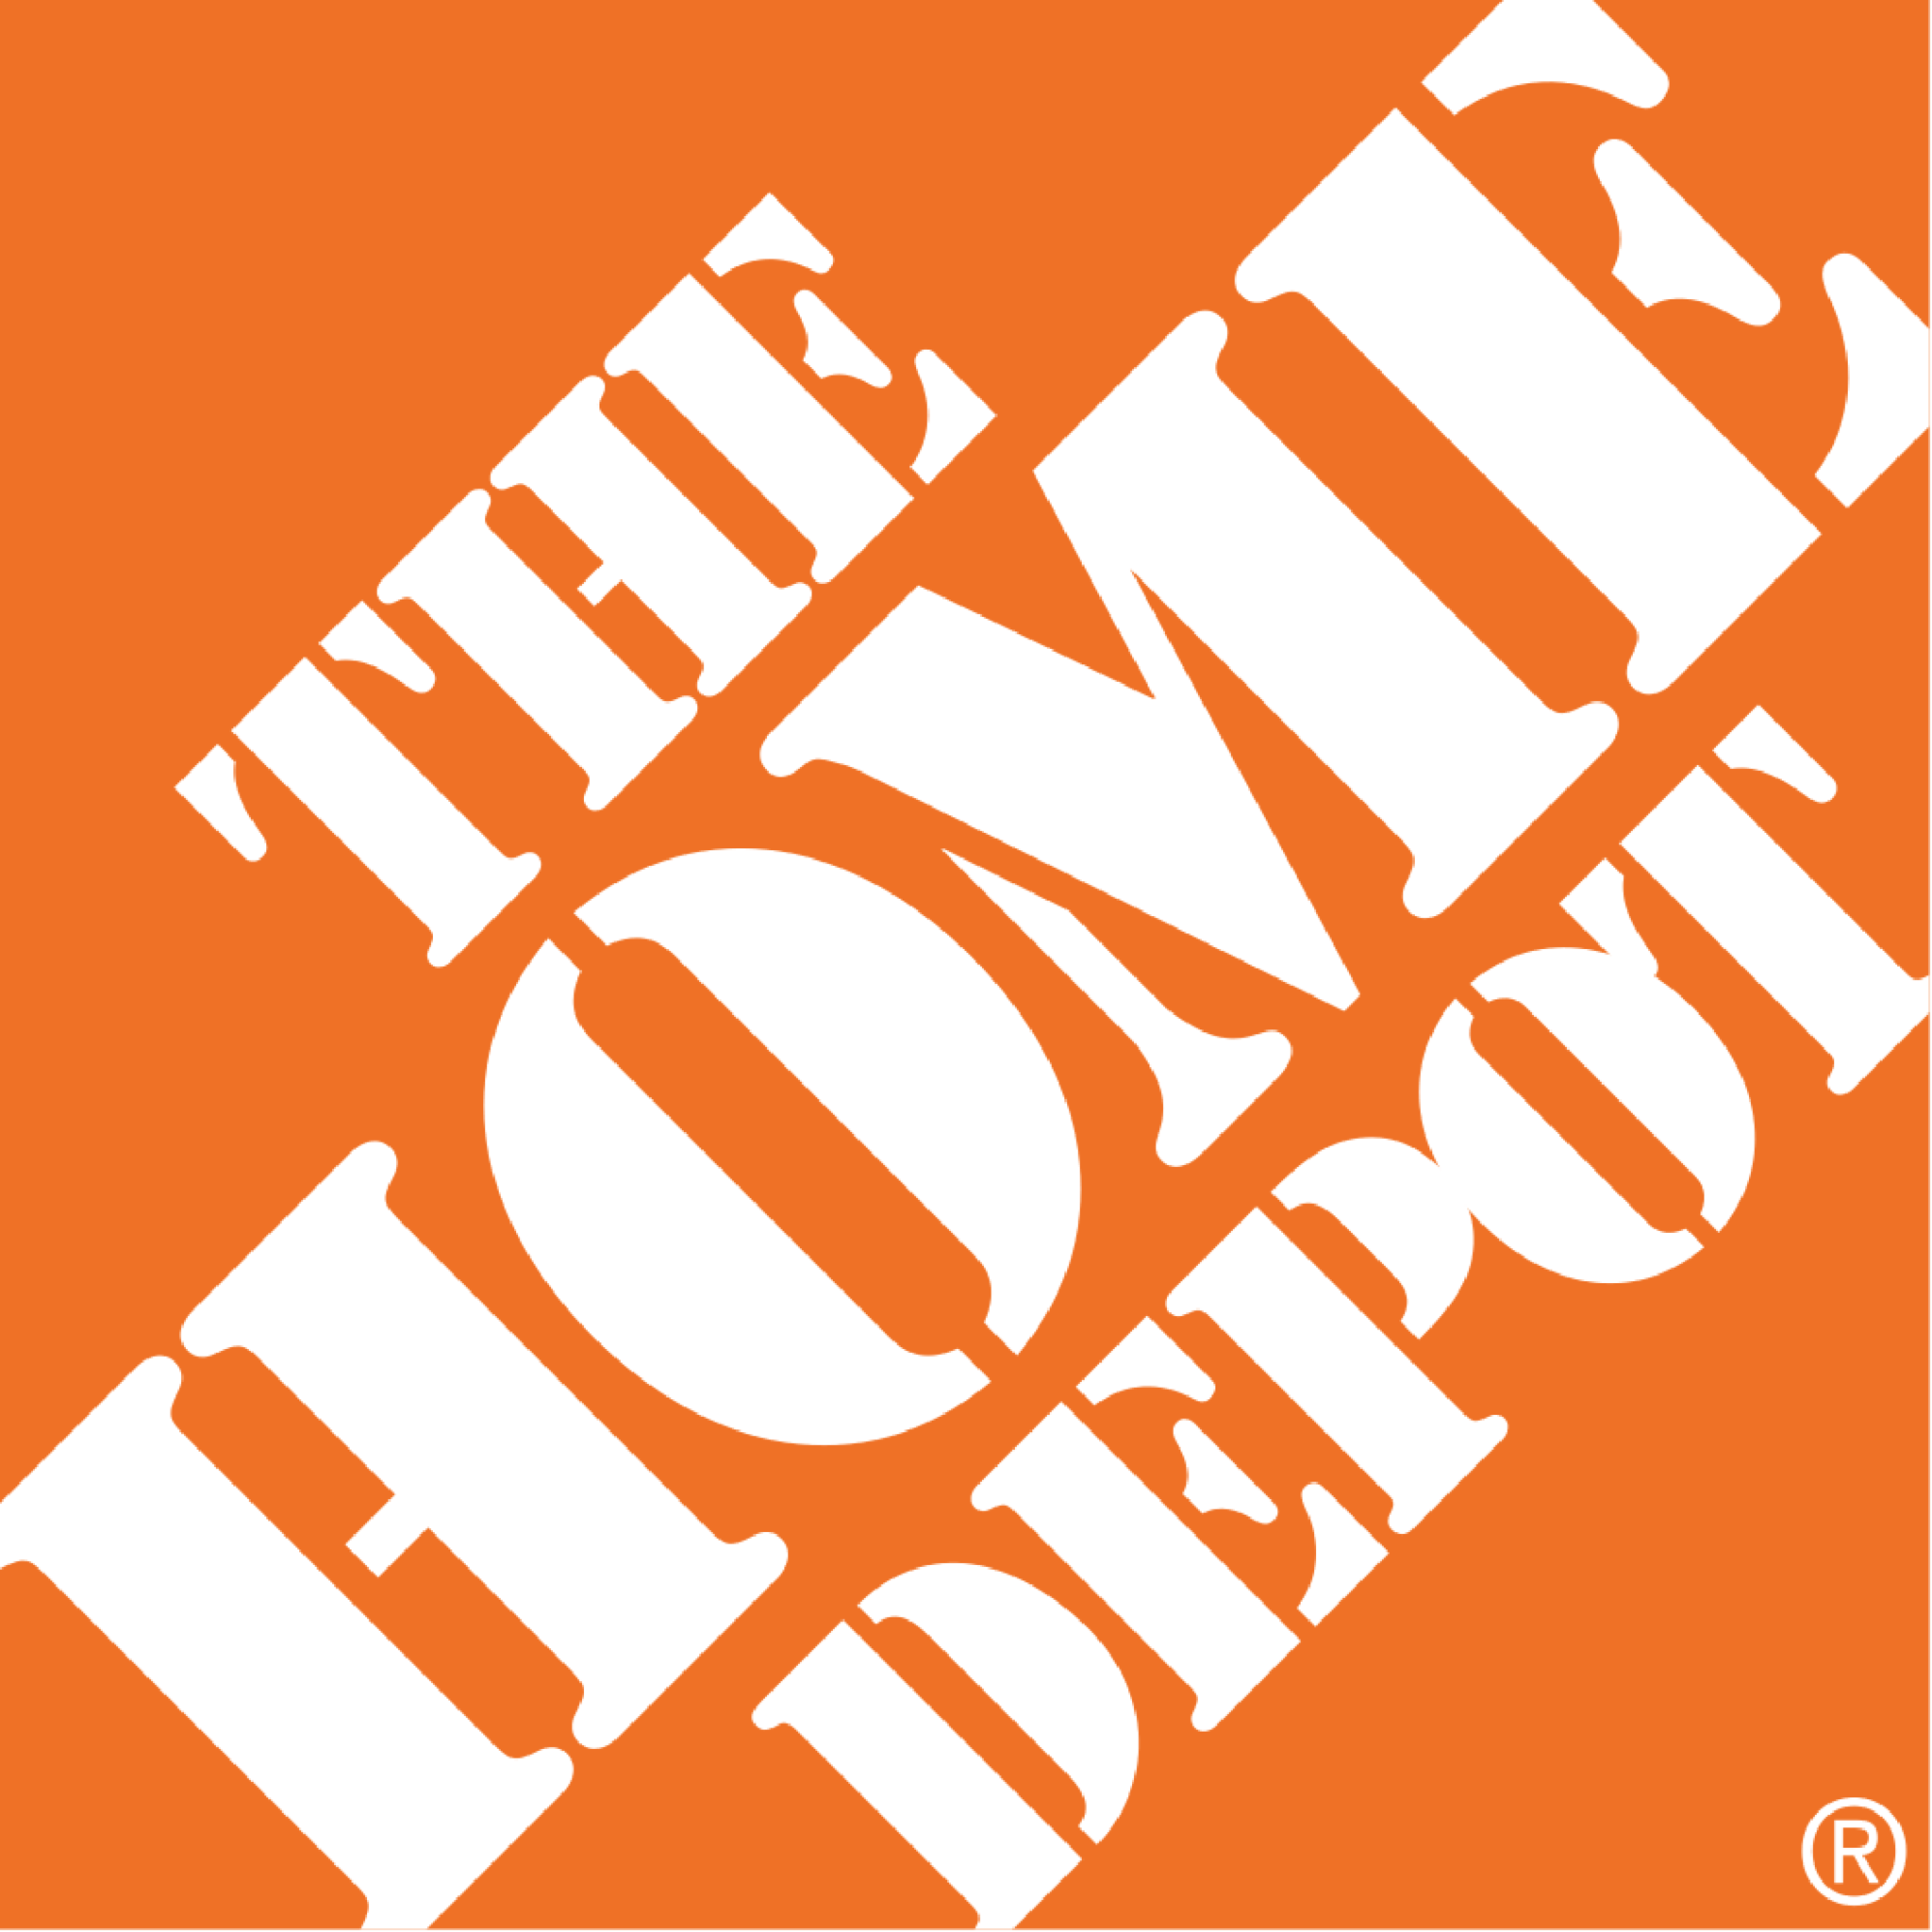 5ecc584f73d9 Home Depot. HomeSense. Hot Topic